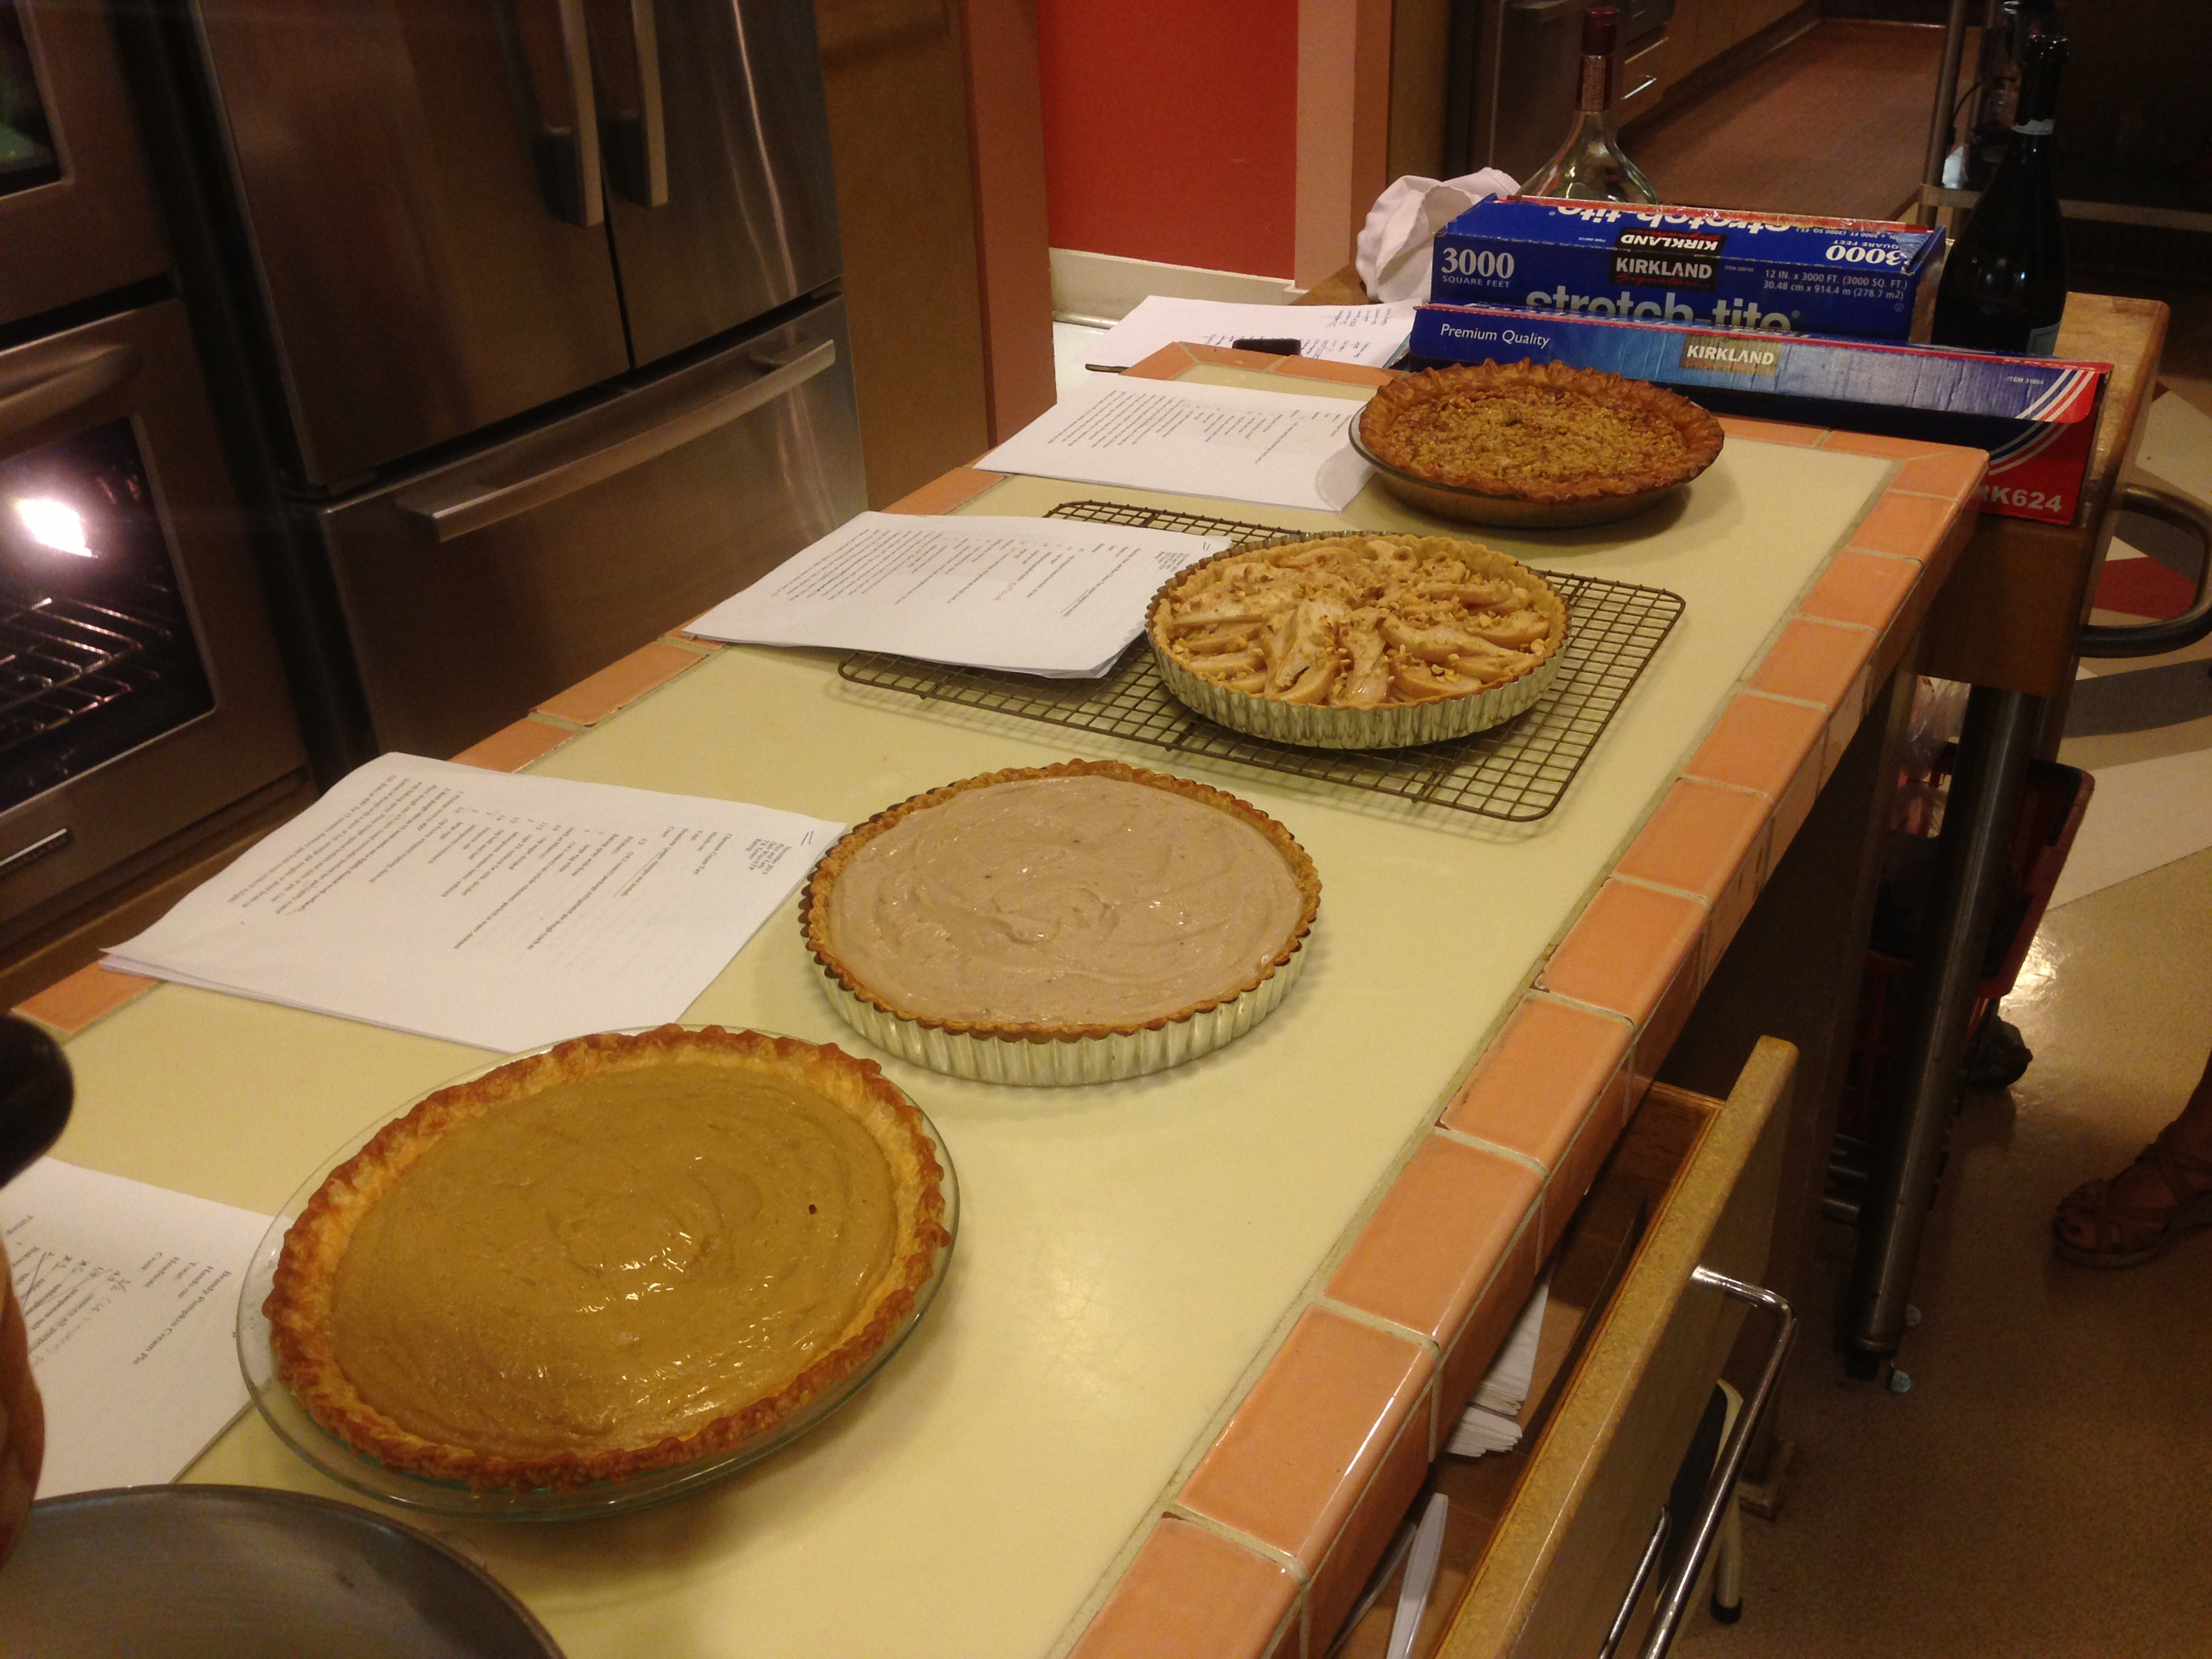 A recent pie tasting in the Test Kitchen. It's a wonderful duty to taste the food in the Cooking Light Test Kitchen, but I find it hard not to oversample. To meet my weight-loss goal, I'm reducing my visits to one or so a week.